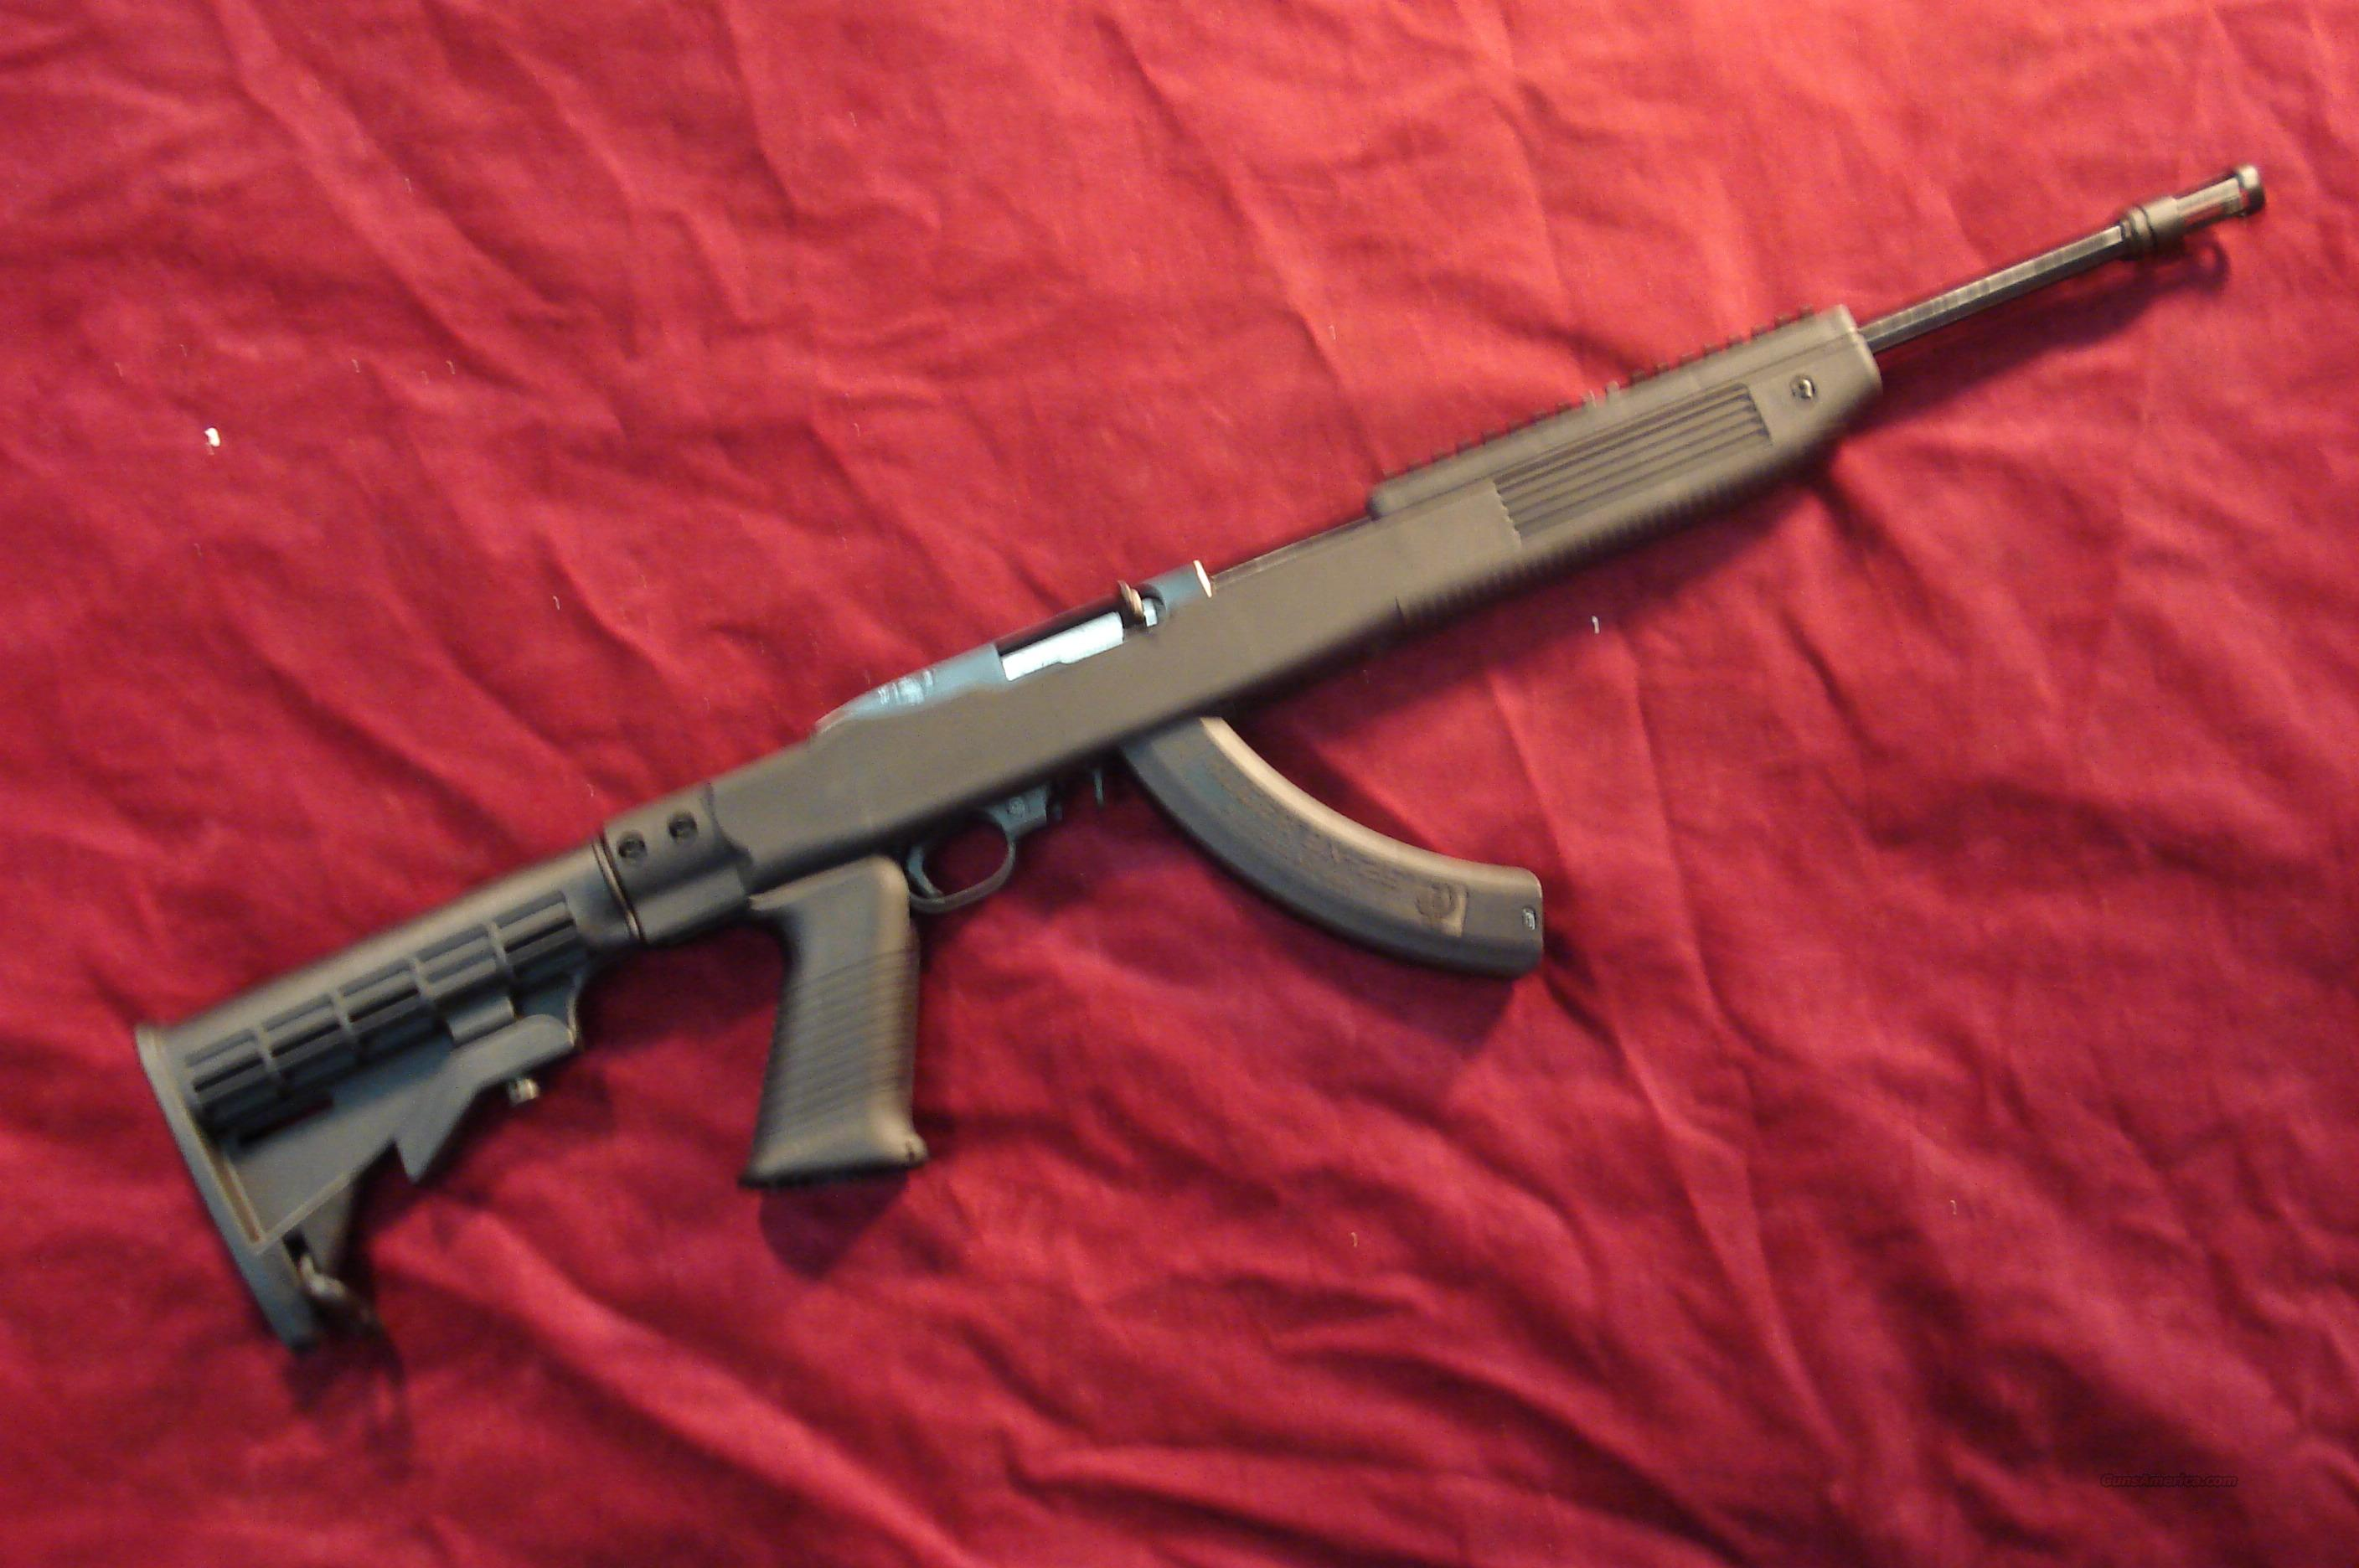 RUGER 10/22 TACTICAL WITH TAPCO STOCK AND FACTORY 25 ROUND MAG NEW  Guns > Rifles > Ruger Rifles > 10-22